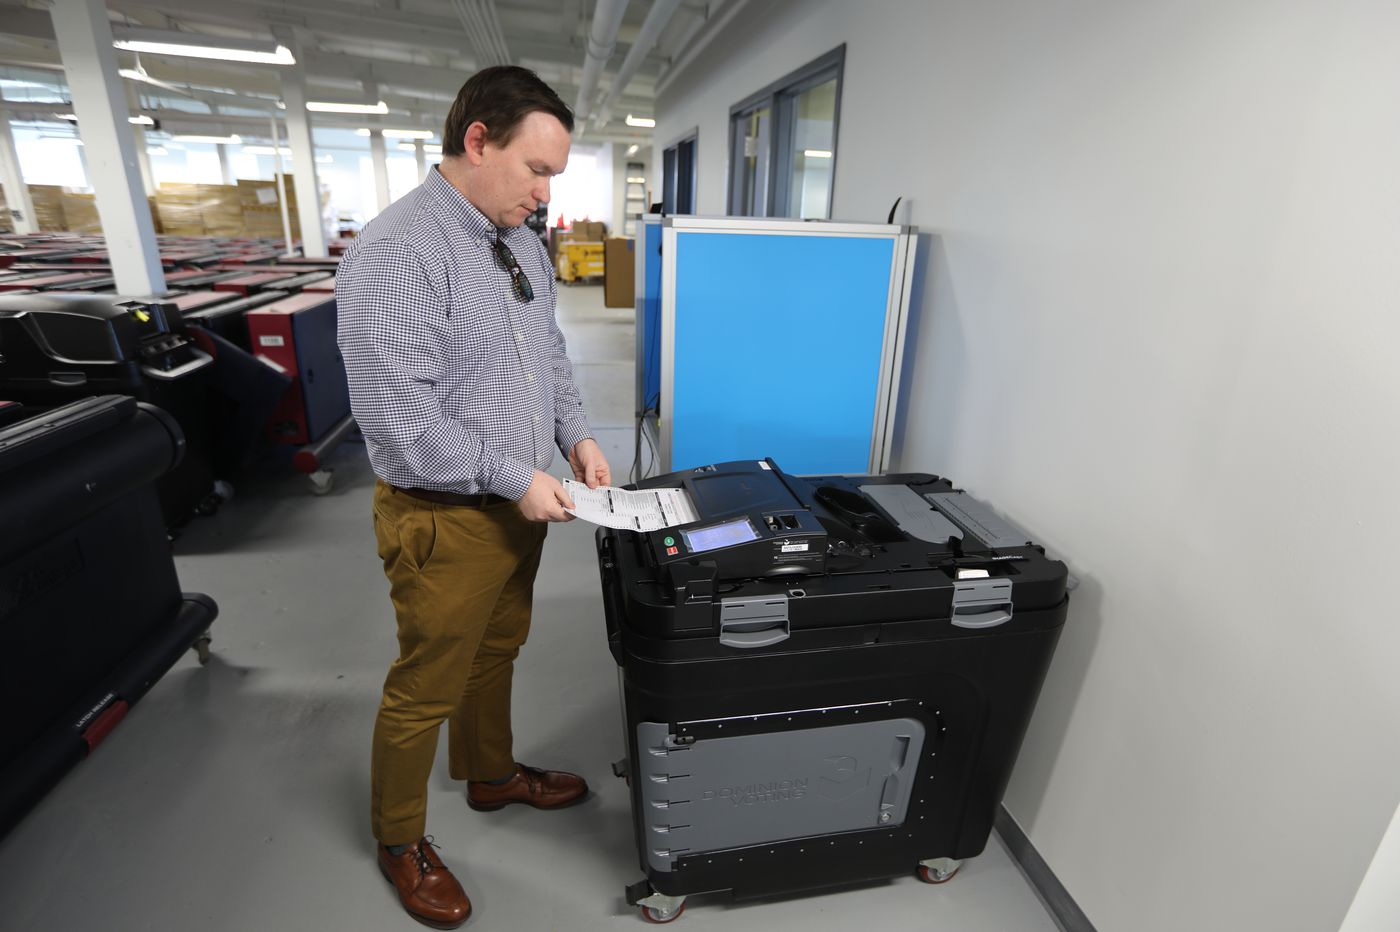 Voters and poll workers had issues with Montgomery County's new paper ballots. Here's the plan moving forward.